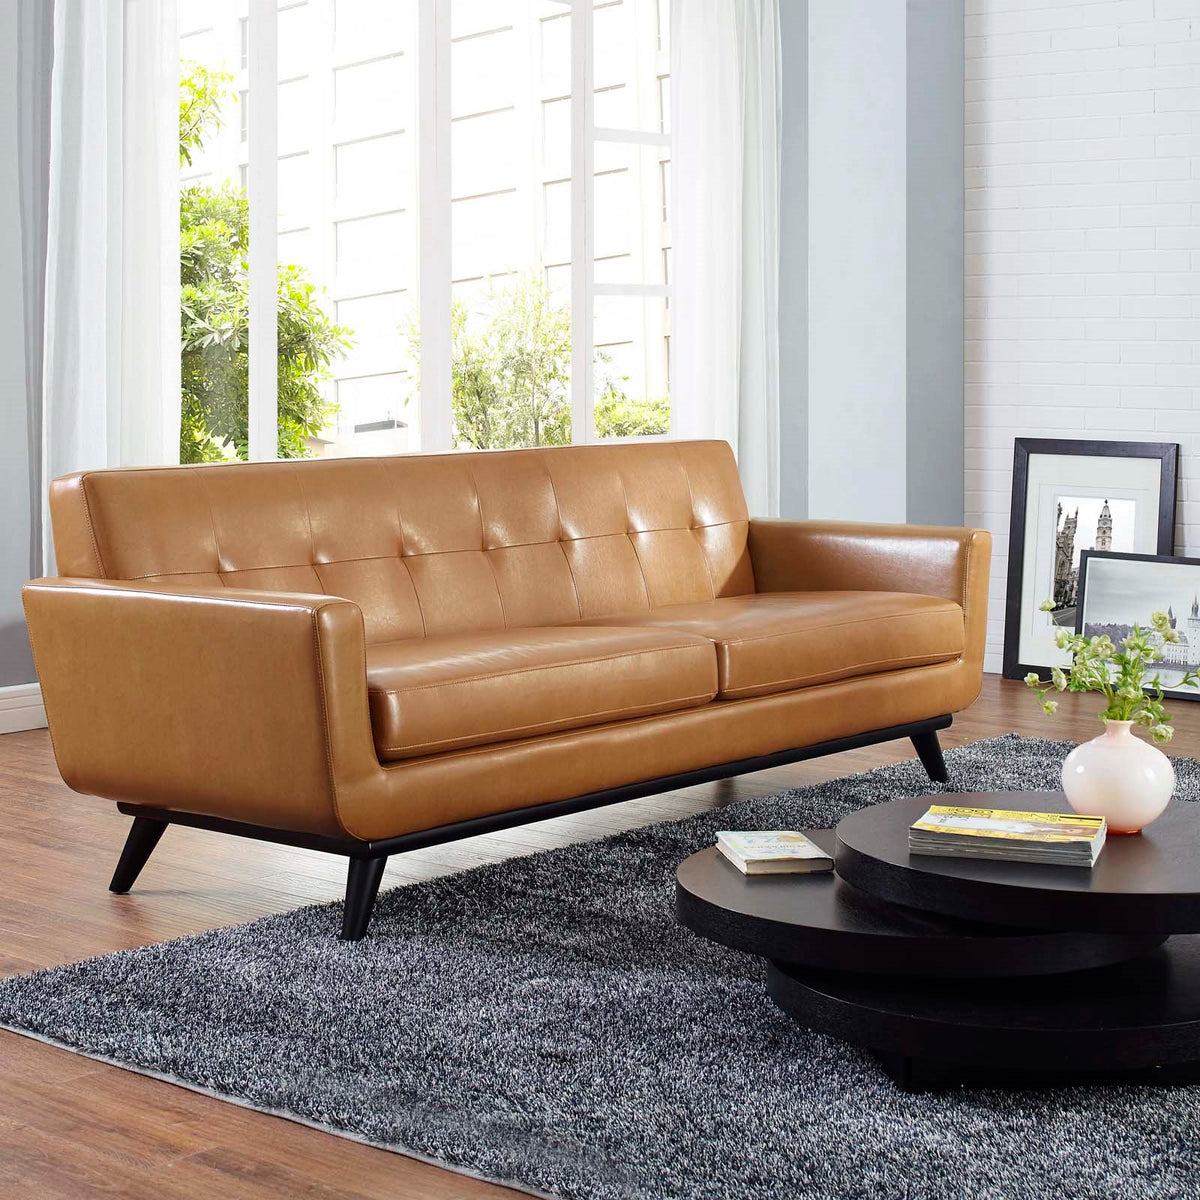 Cava Bonded Leather Tan